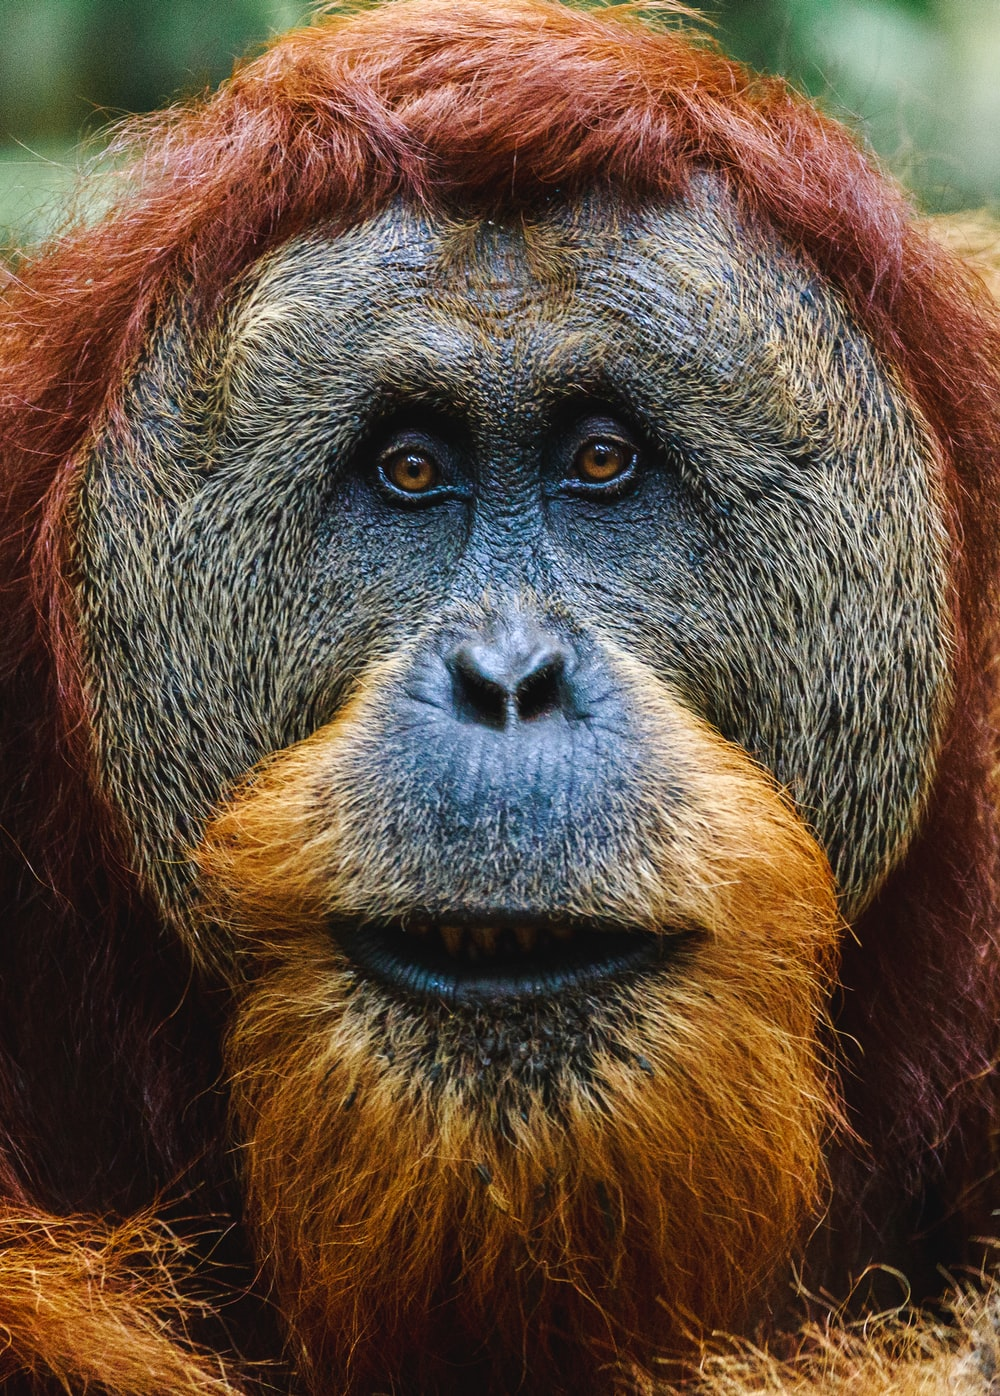 close-up photo of orangutan